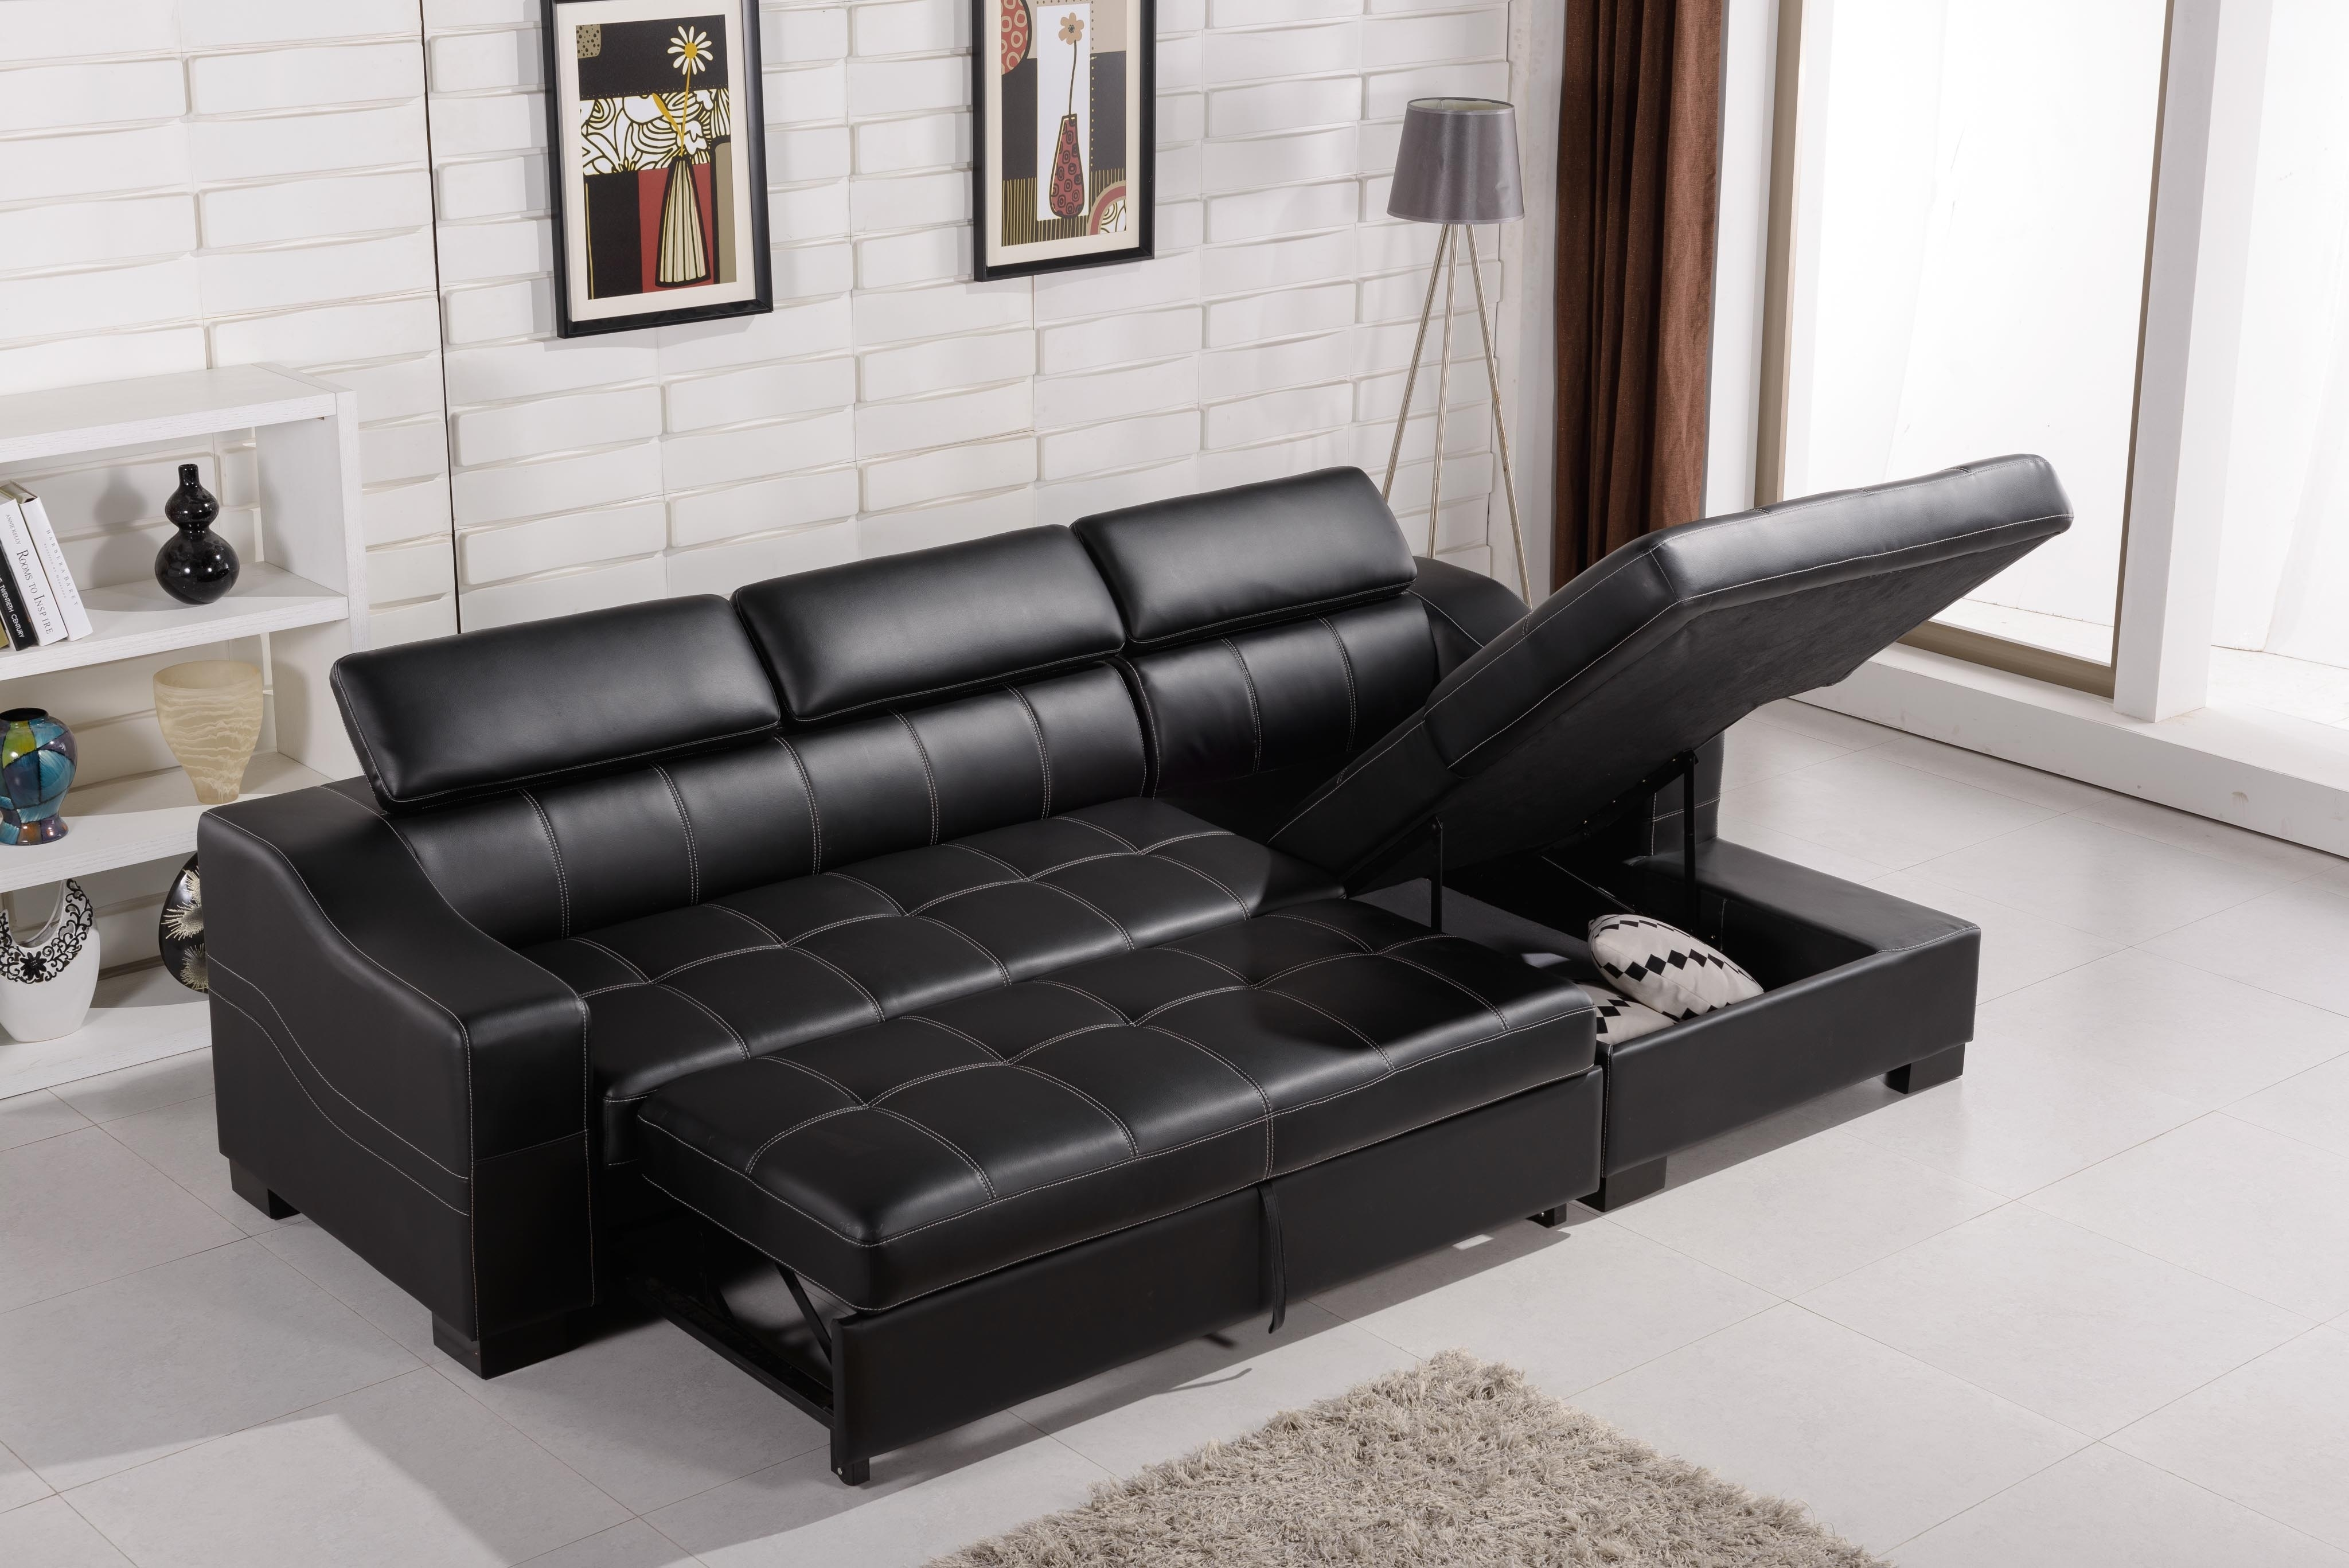 Sectional Sofa That Turns Into A Bed • Sofa Bed With Sectional Sofas That Turn Into Beds (Image 8 of 10)